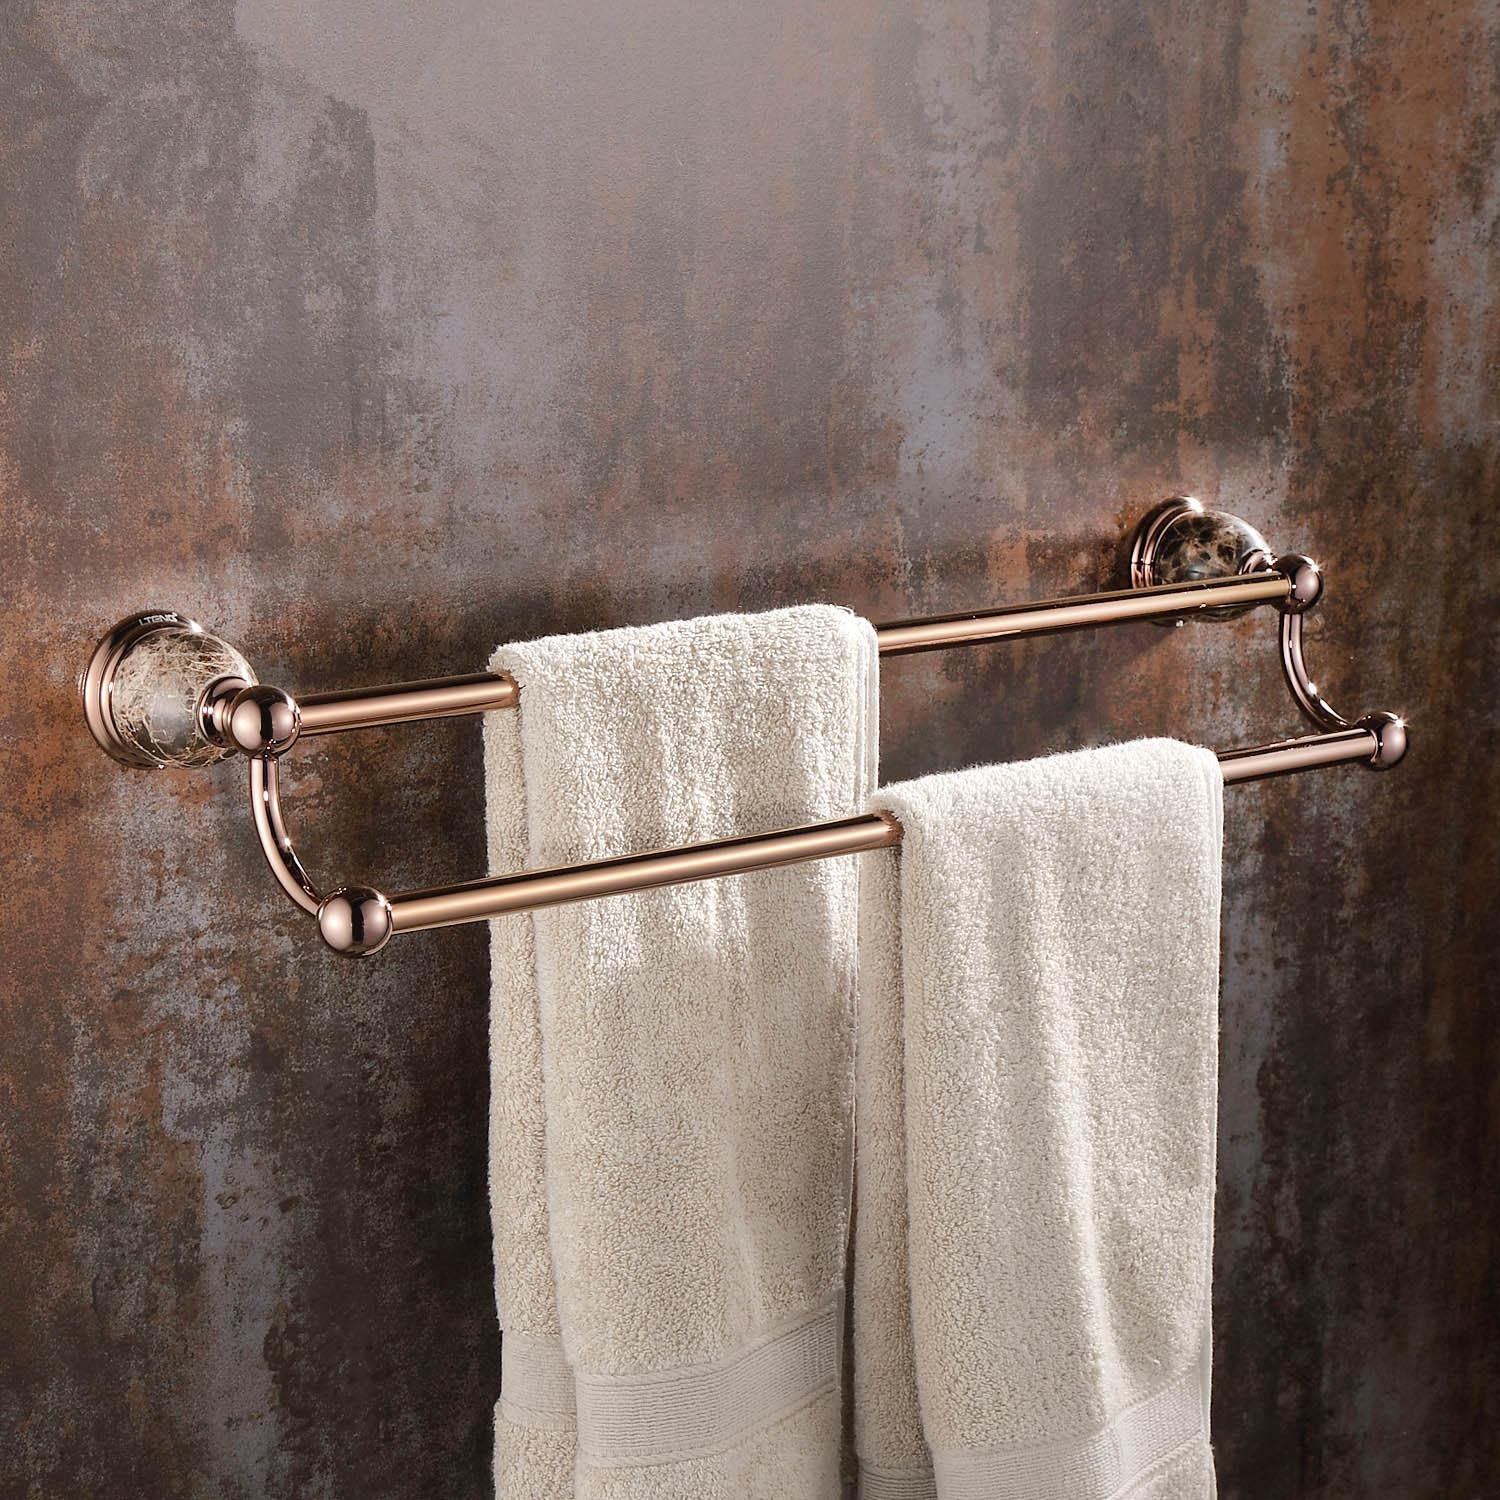 Polished Brass Bathroom Towel Bars: Modern Solid Brass Polished Towel Rack 2 Layer Rose Gold